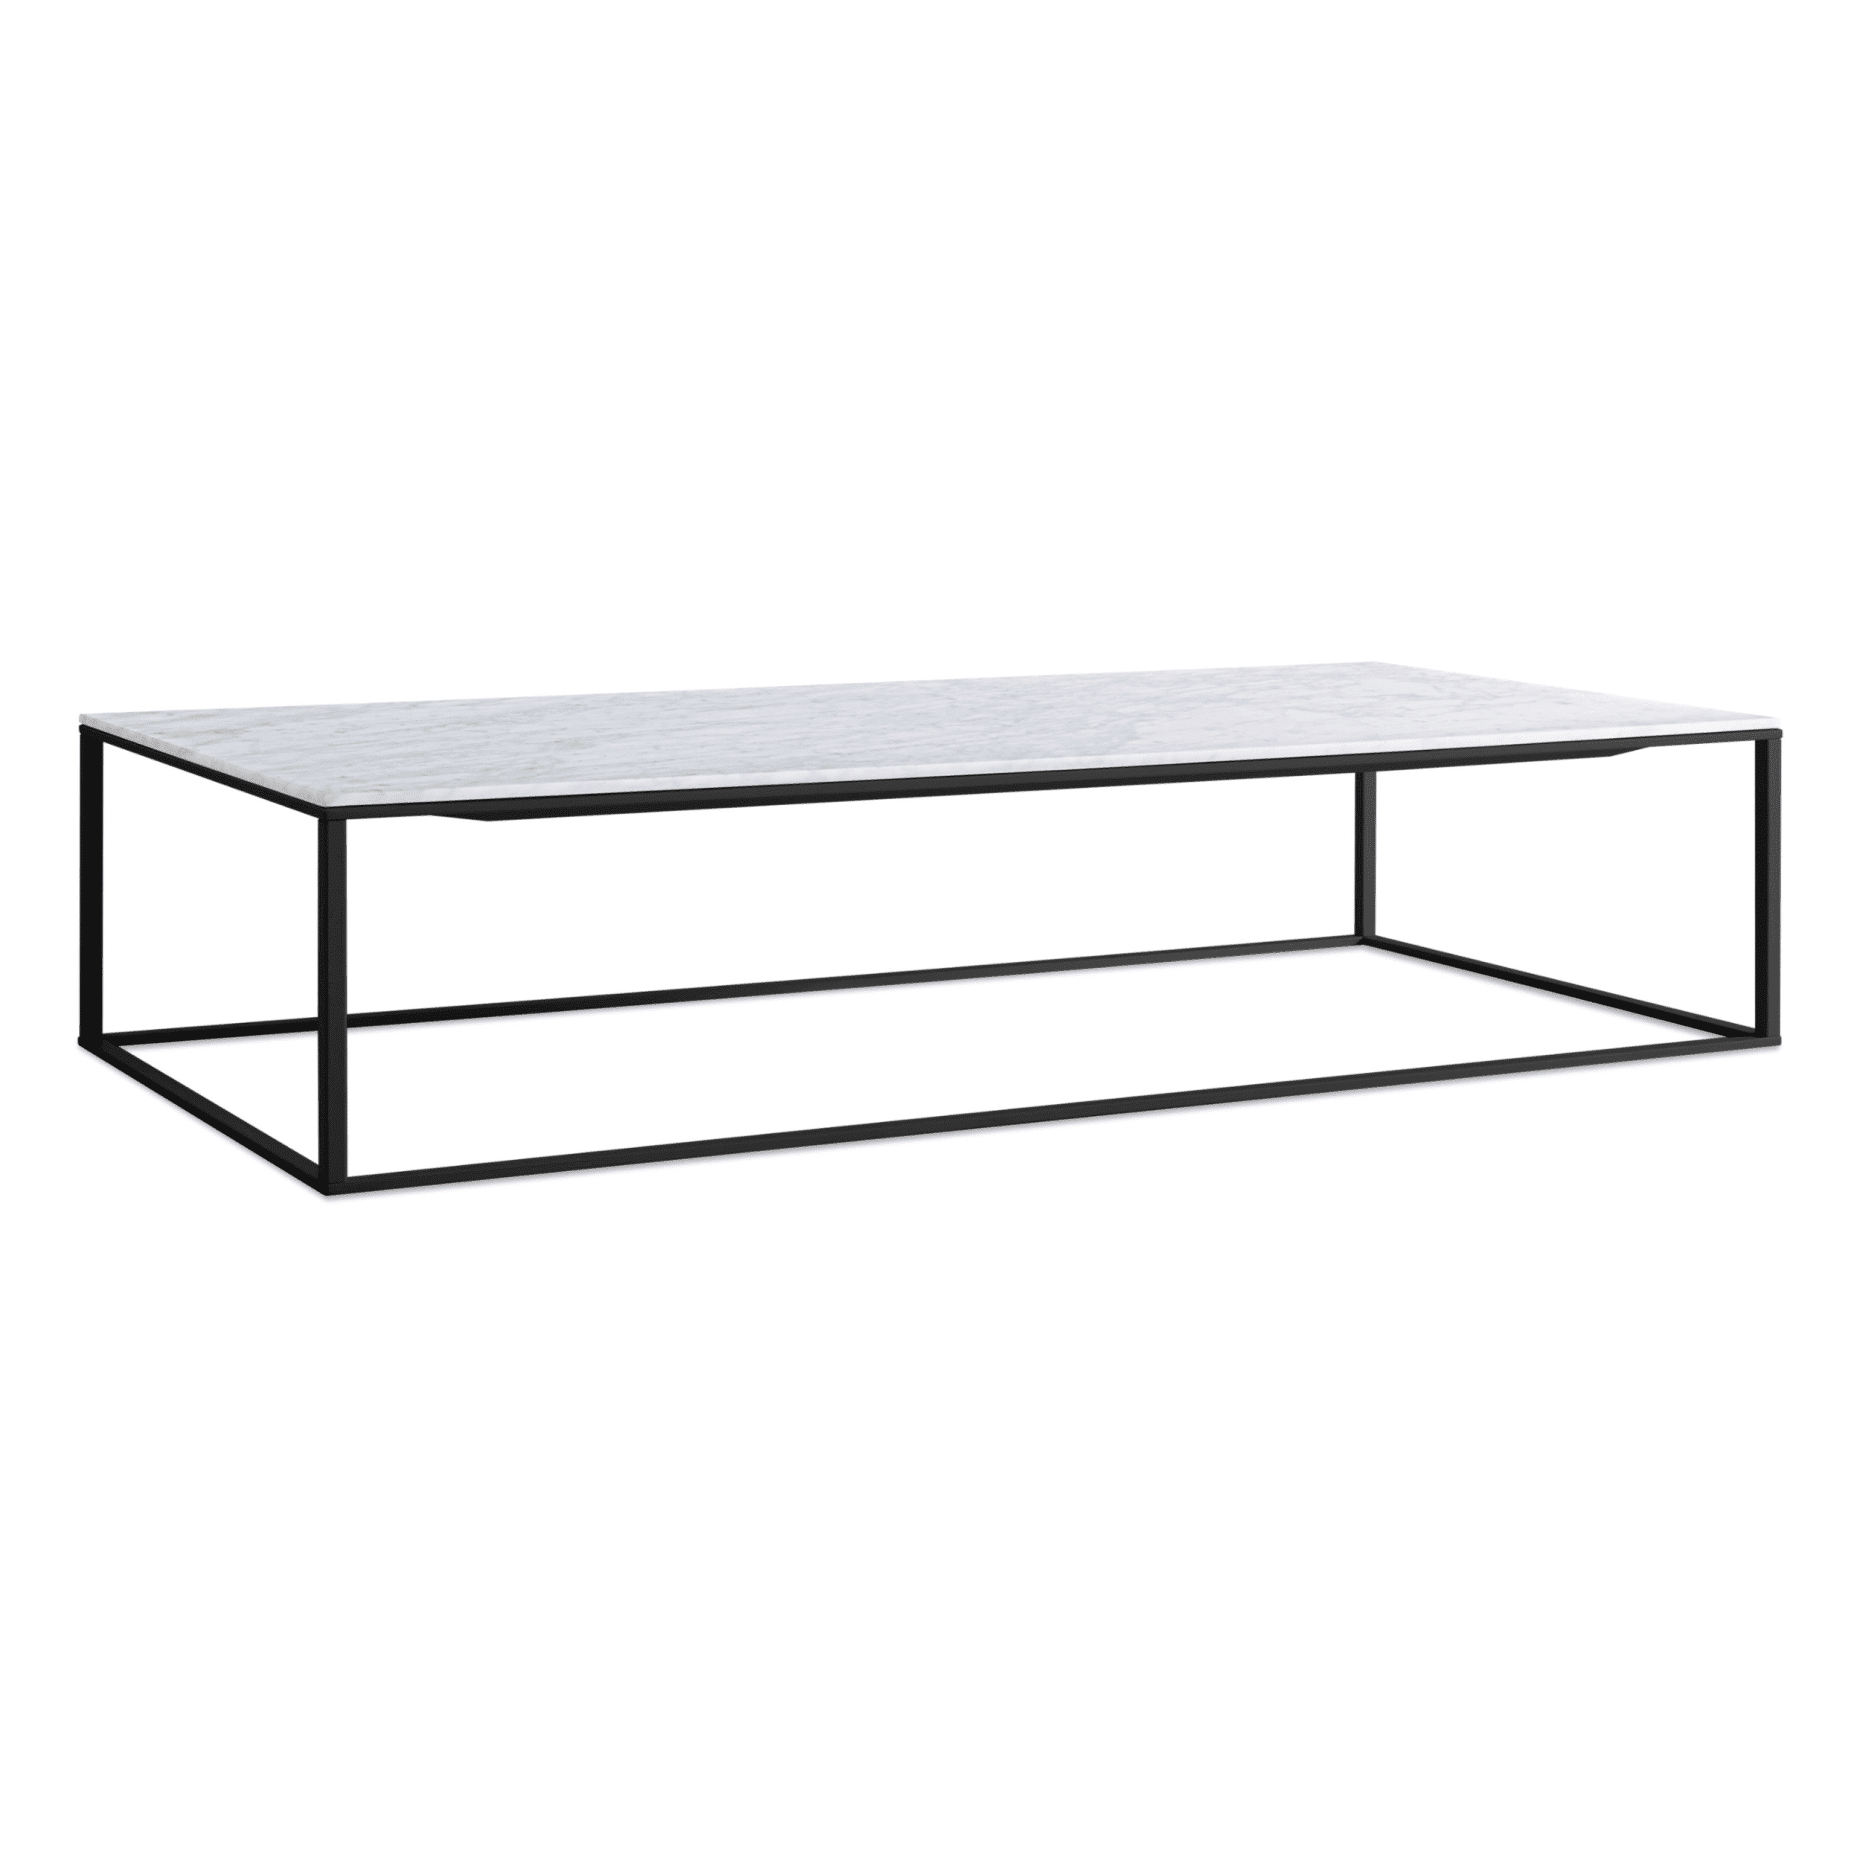 mn1 lcofbk mb 34 minimalista large coffee table black marble 2